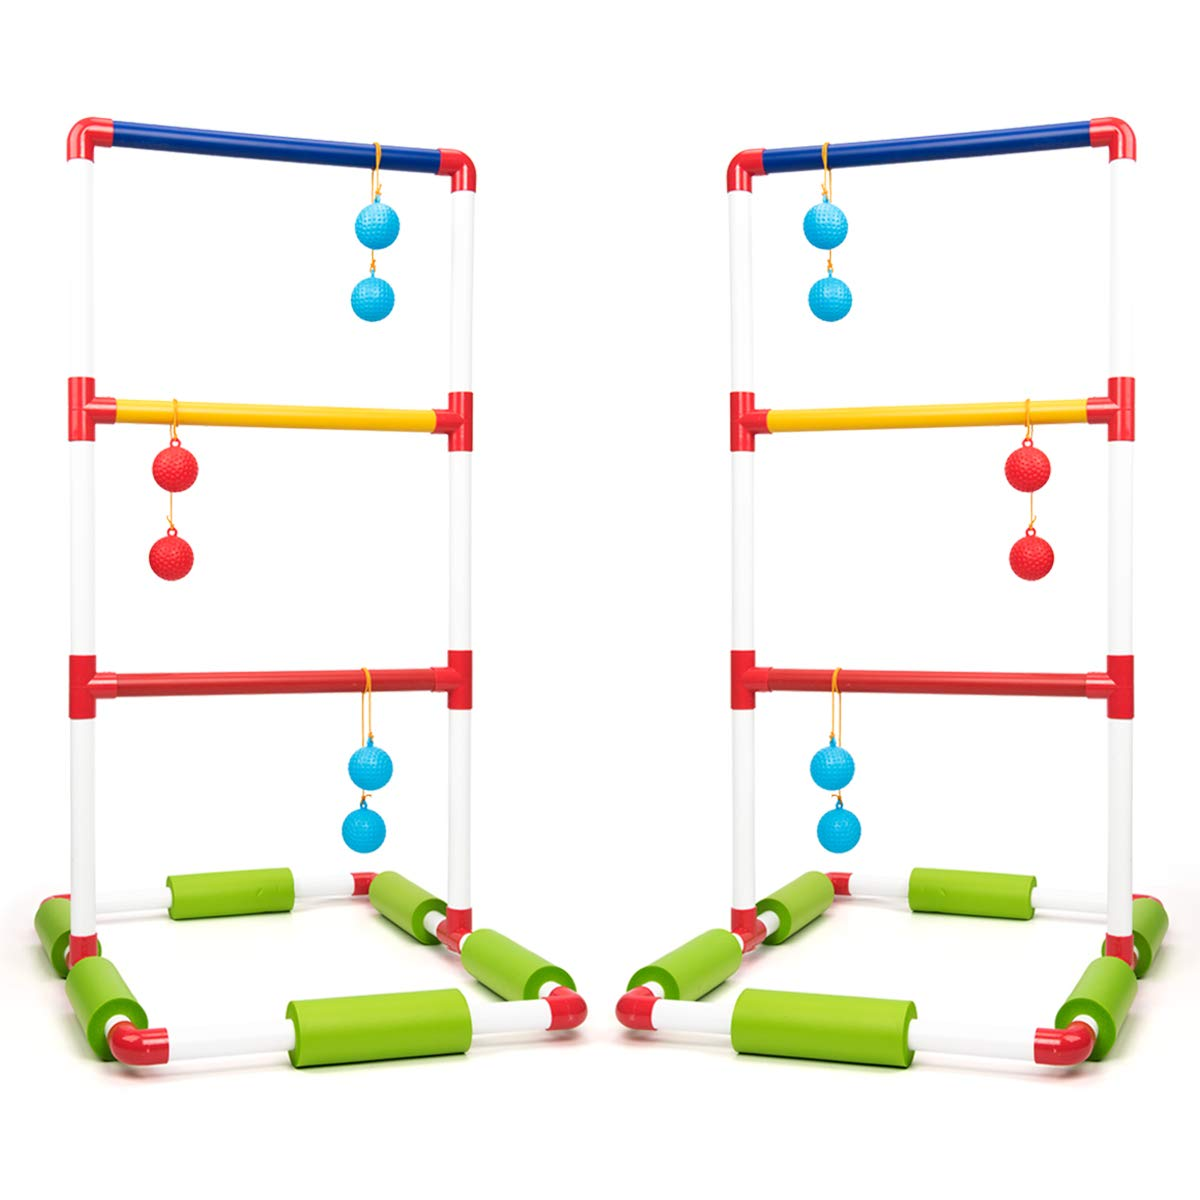 ROPODA Floating Ladder Ball toss Game Set-Fun Pool Toys with 6 Floating Game Balls,2 PVC Ladder Set and Carrying case for Kids and Adults Play by ROPODA